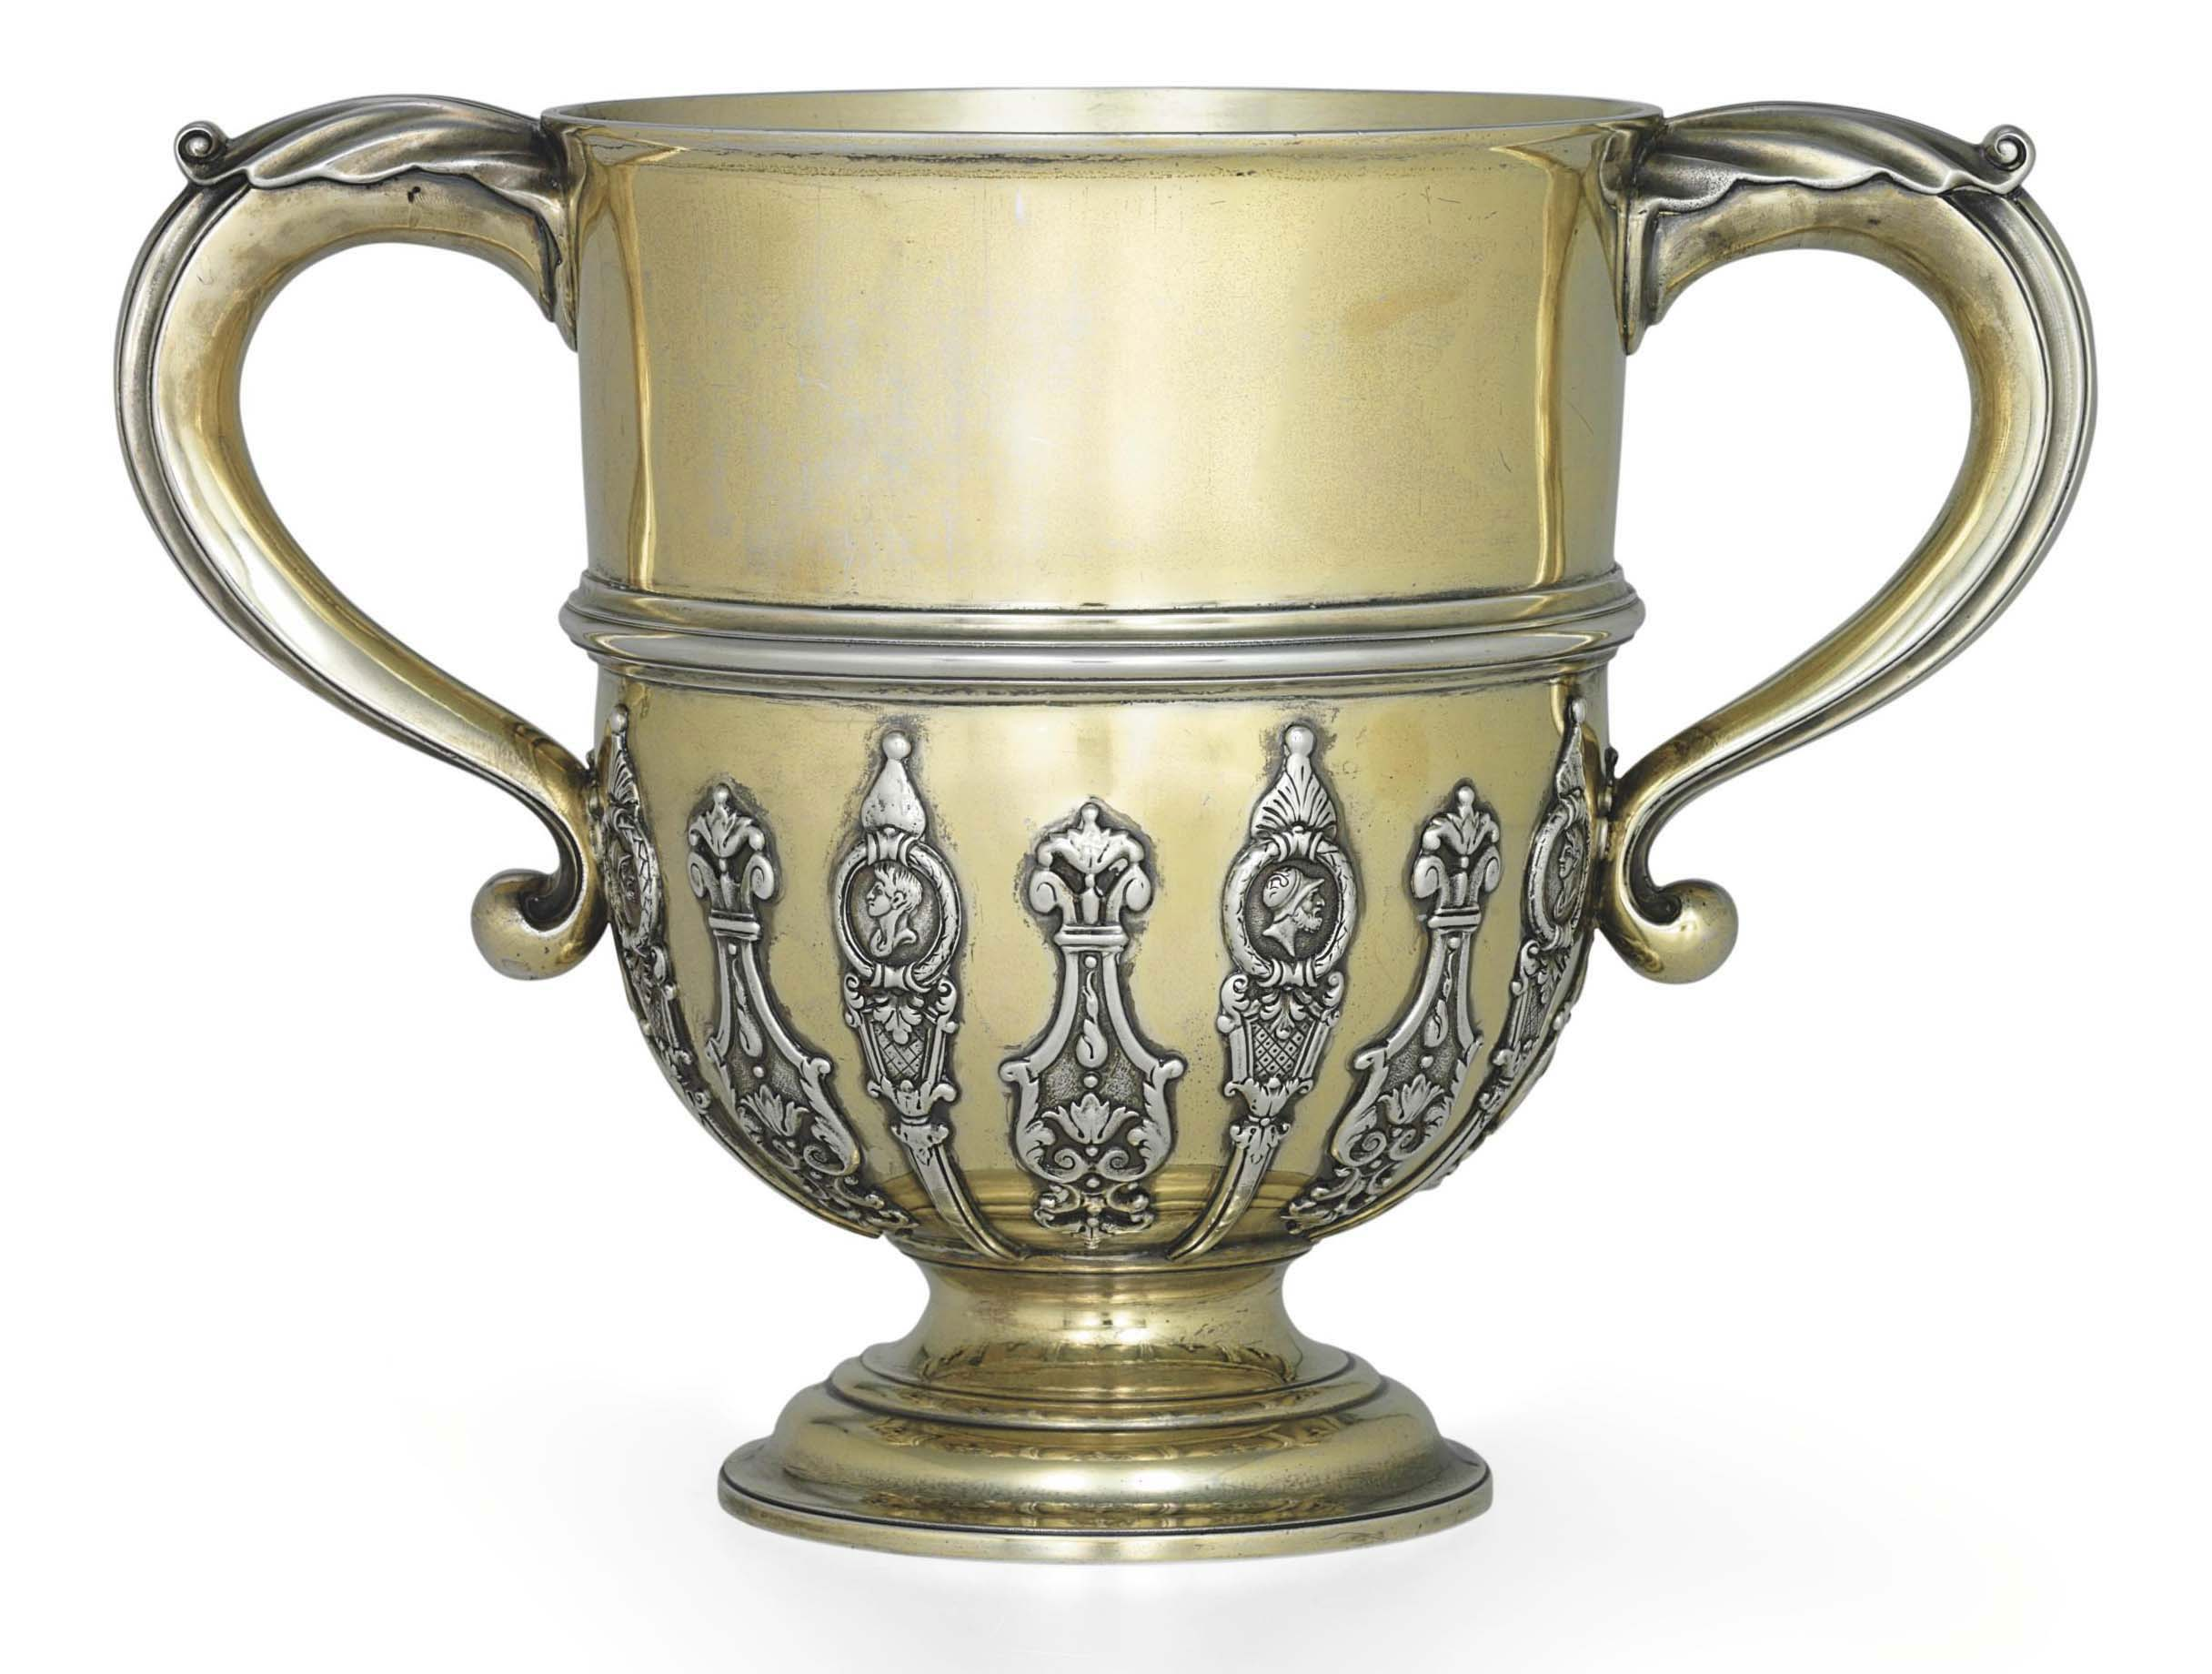 A GEORGE III SILVER-GILT CUP